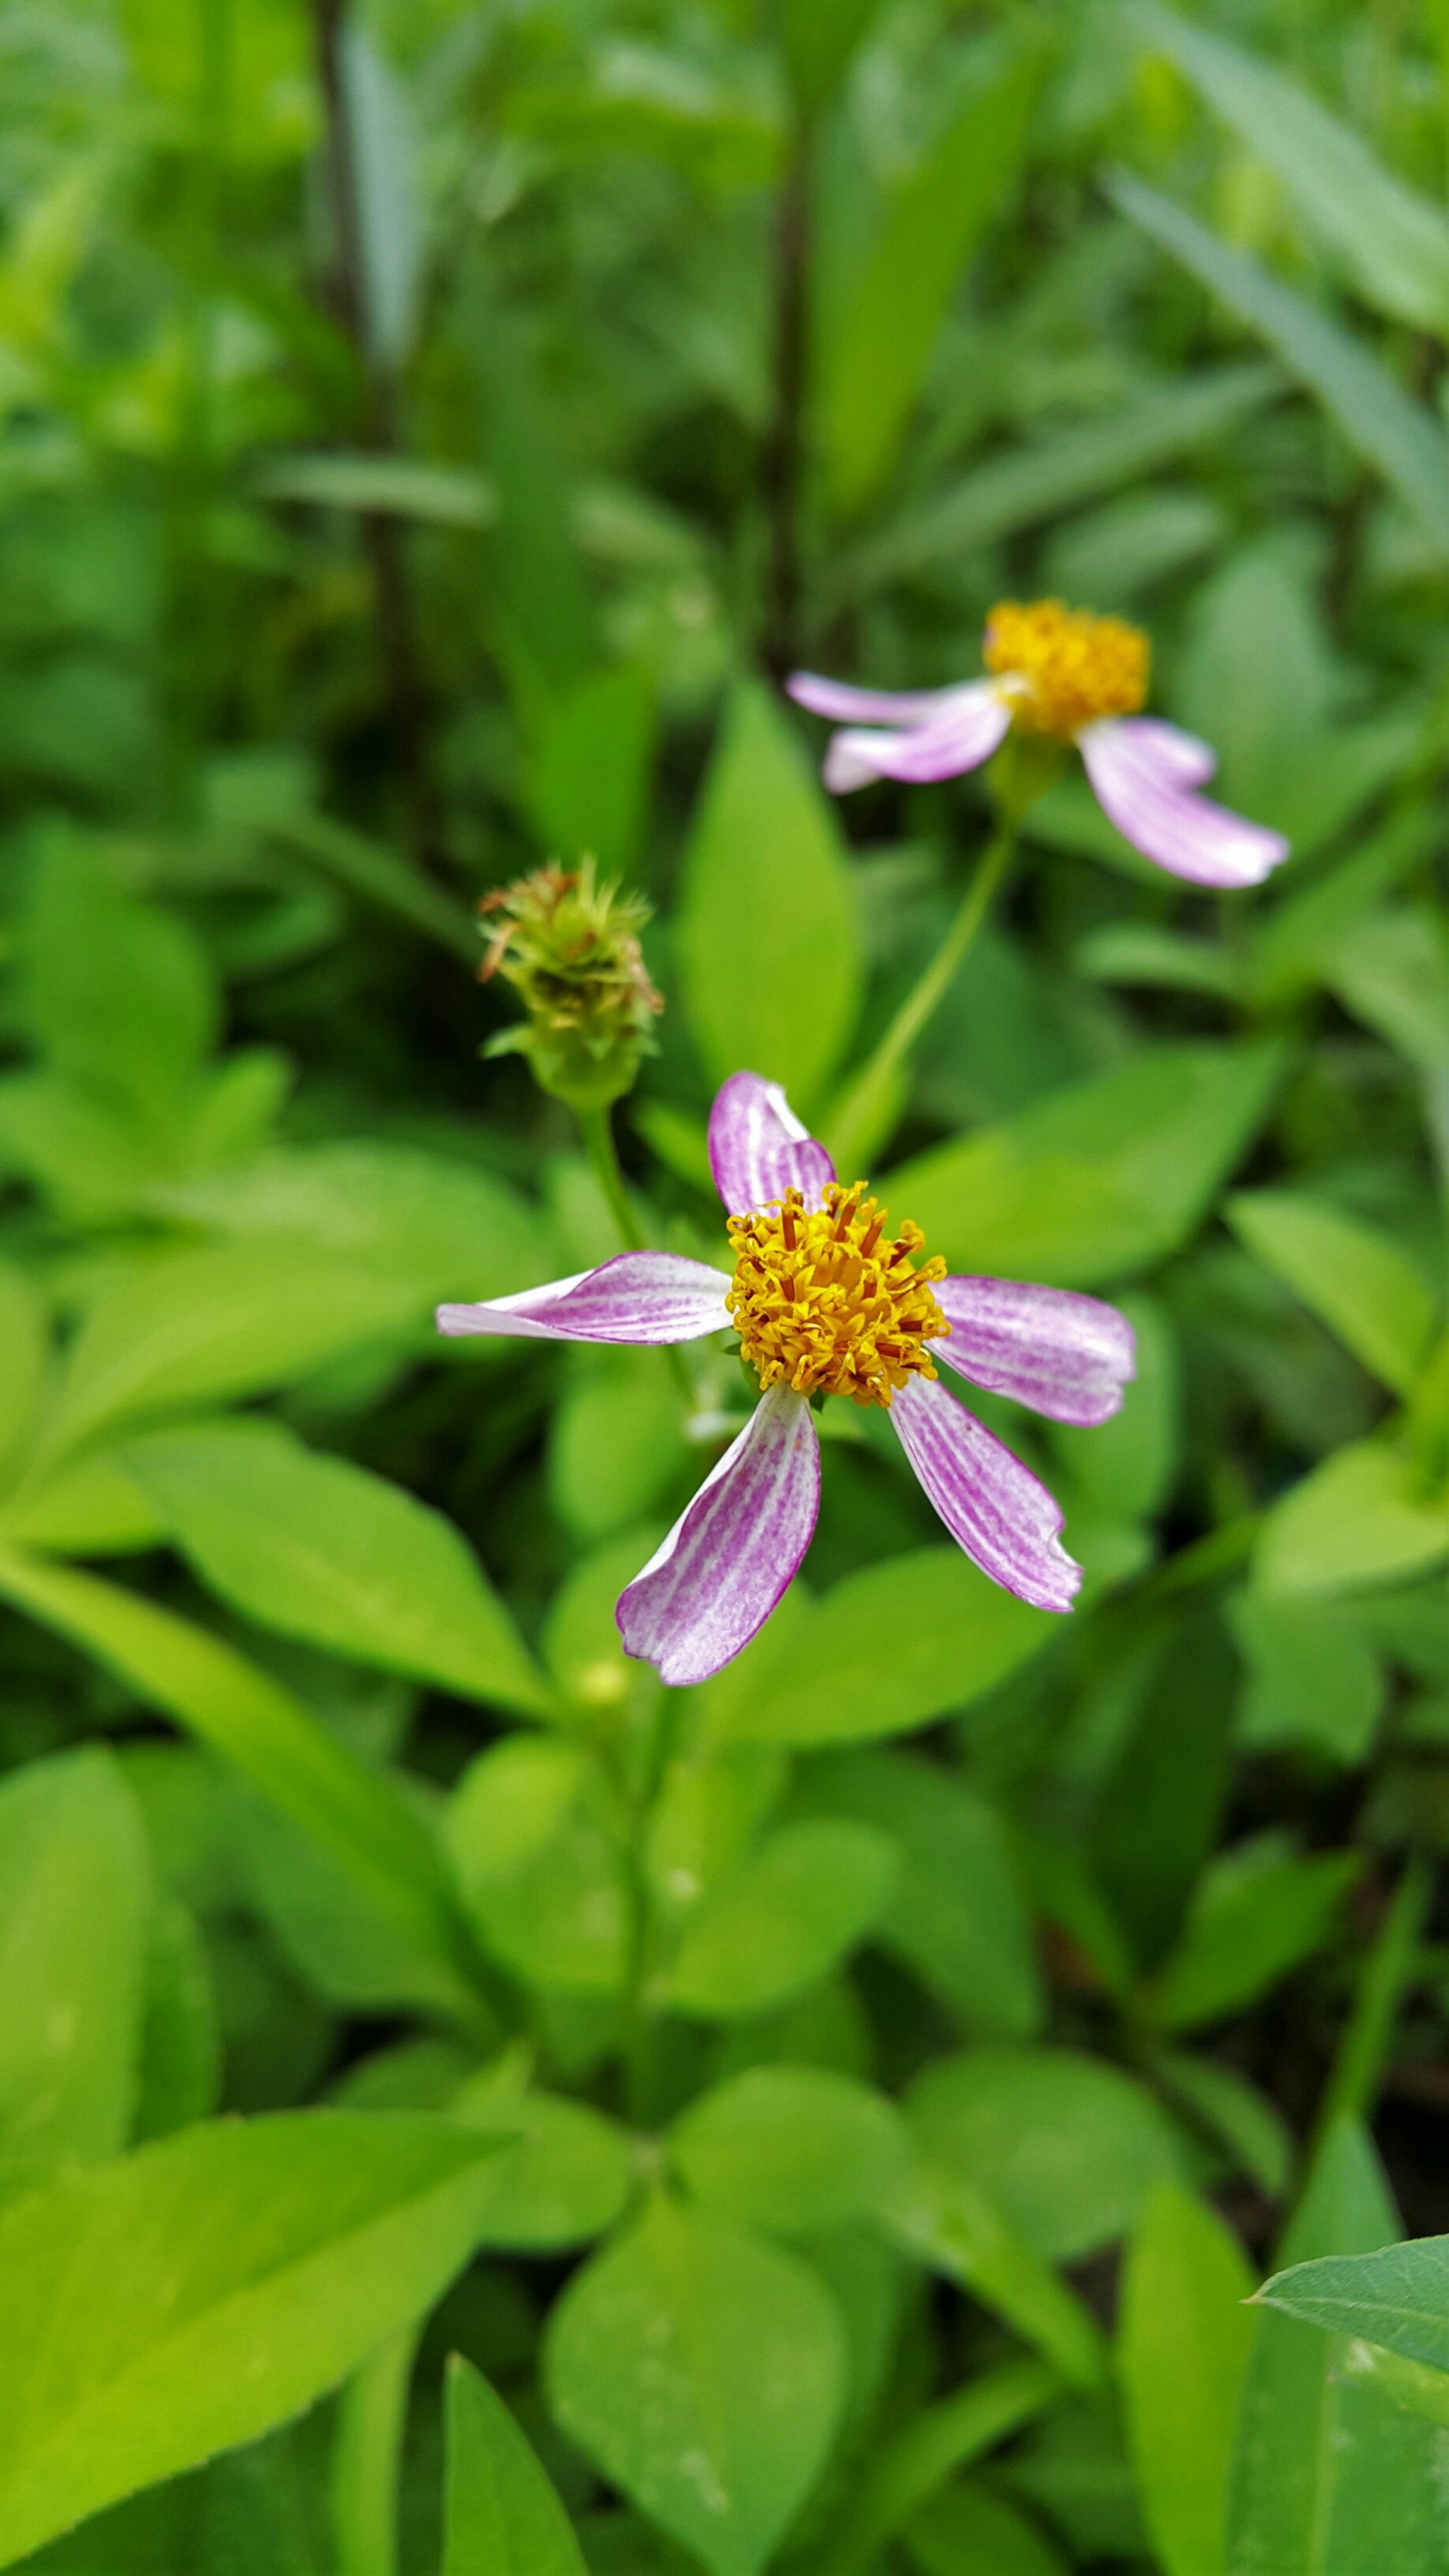 flower, petal, freshness, purple, fragility, flower head, growth, beauty in nature, plant, blooming, close-up, focus on foreground, nature, leaf, green color, high angle view, insect, in bloom, pollen, single flower